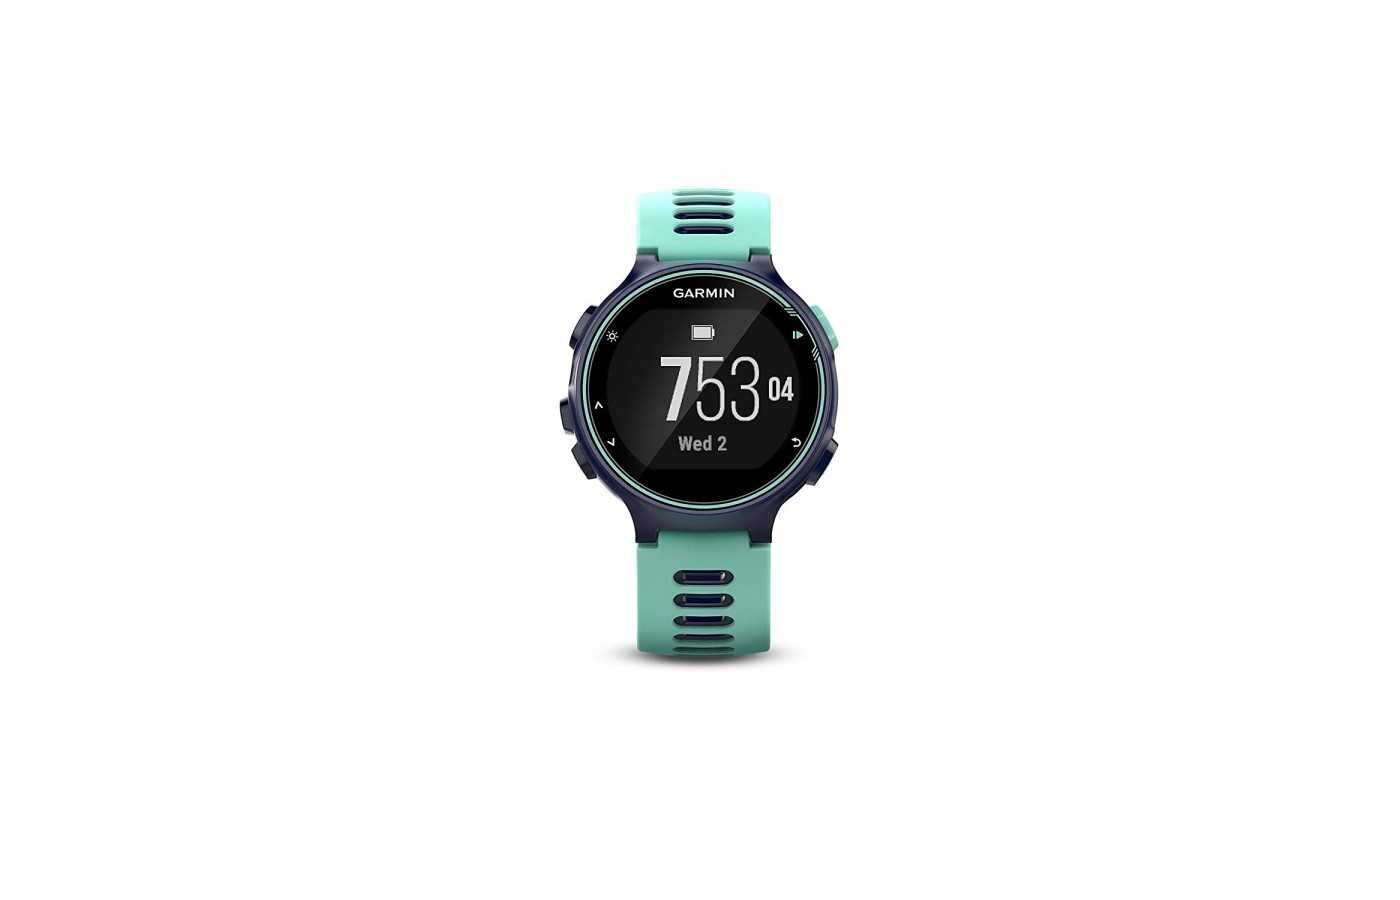 The Garmin Forerunner 735XT is waterproof for tracking during water-based sports.